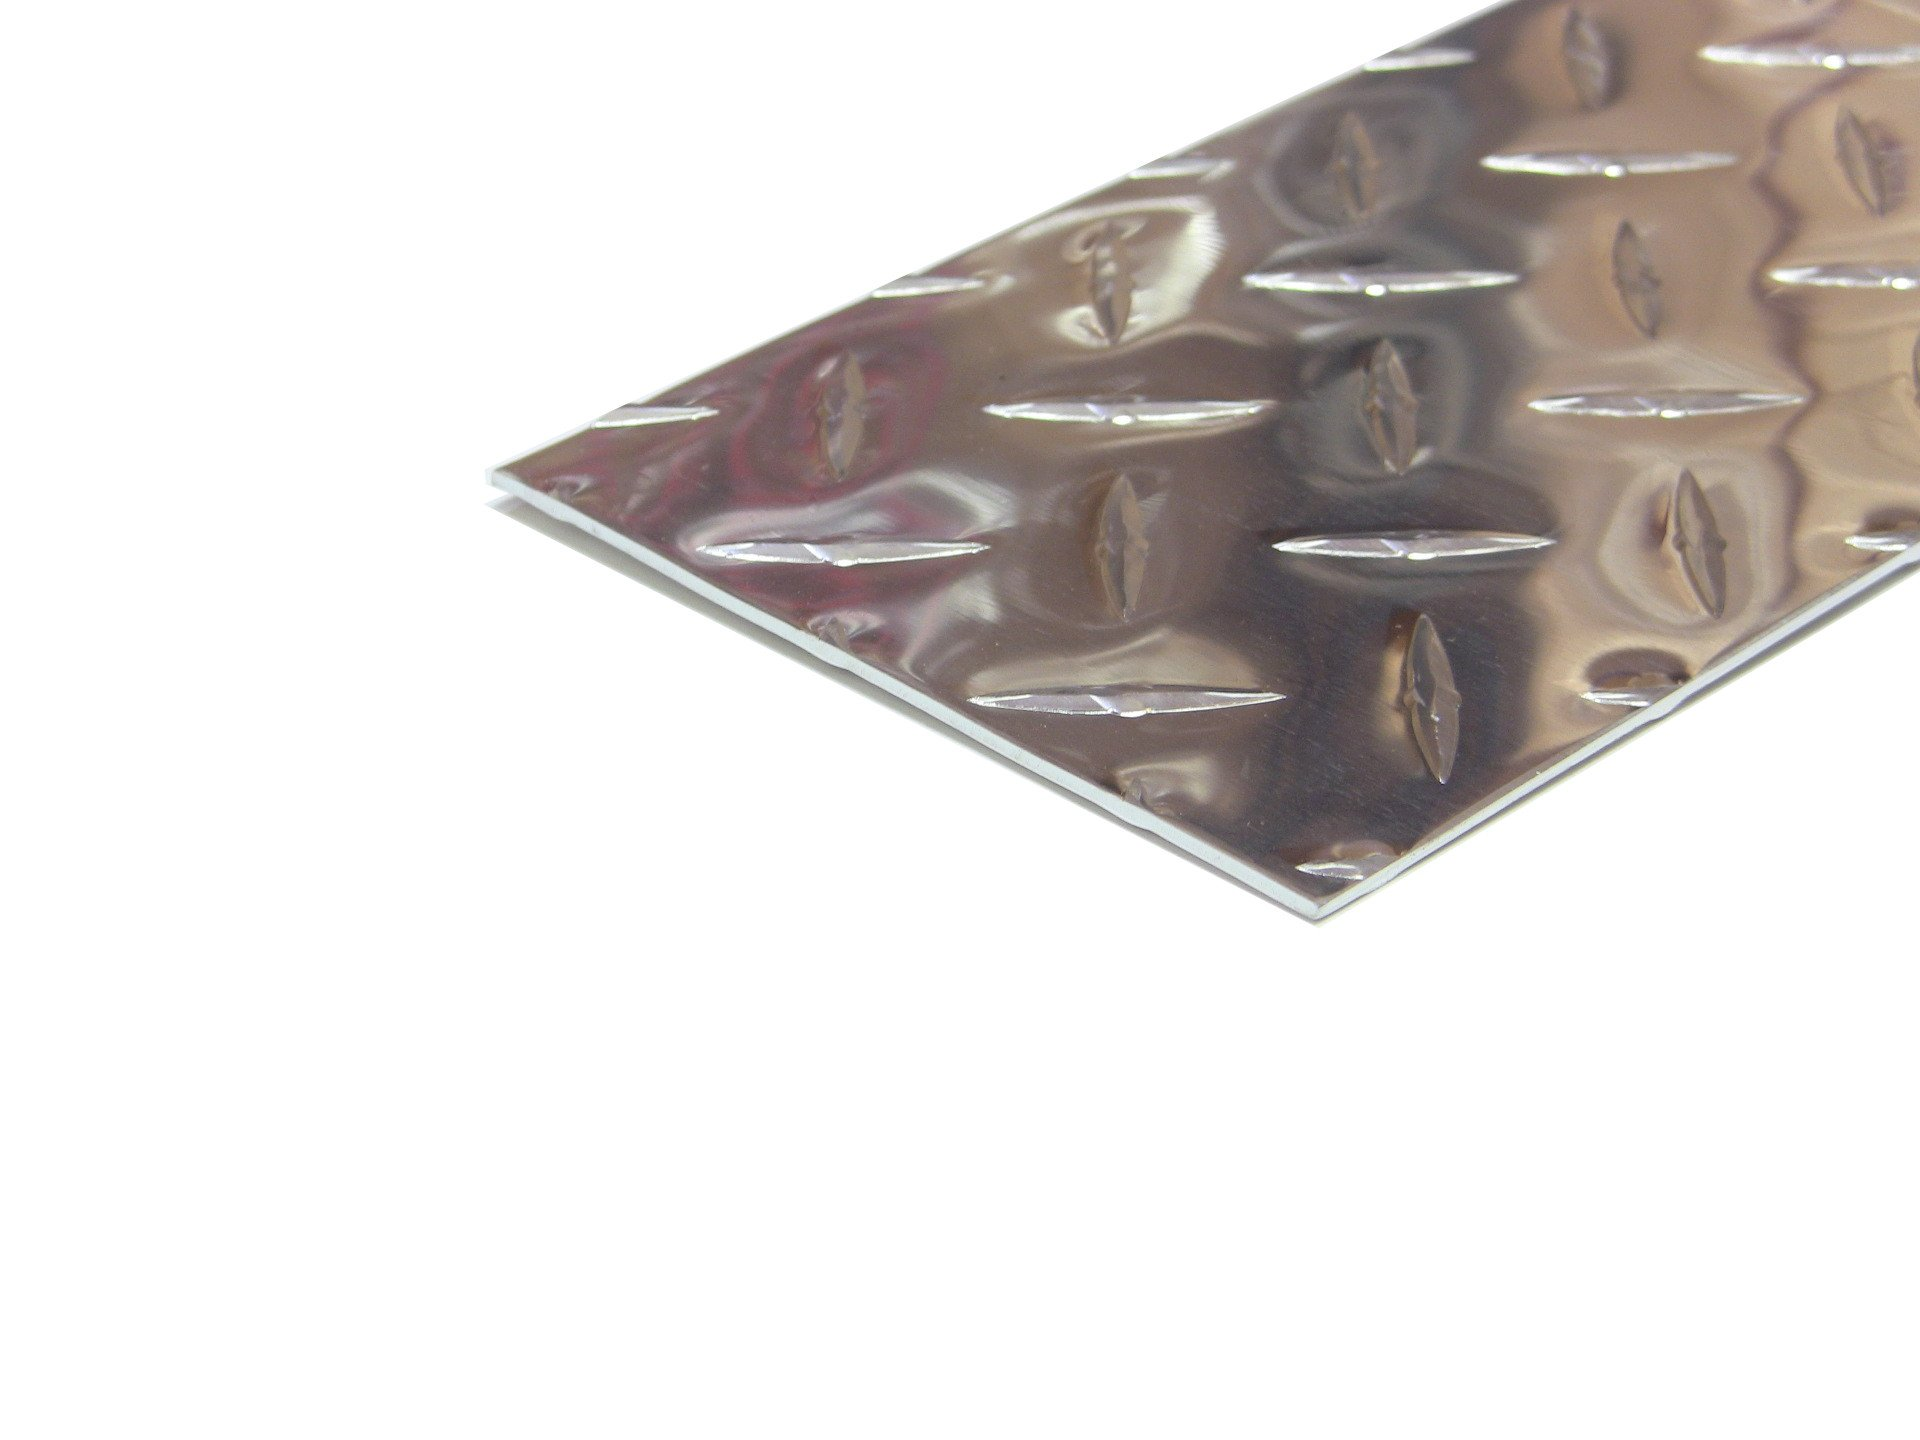 Aluminum Diamond Plate Door Kick Plate .062 x 4 x 30 in. w/out screws and holes   Kickplate (1/16 x 4 x 30 in.) UAAC